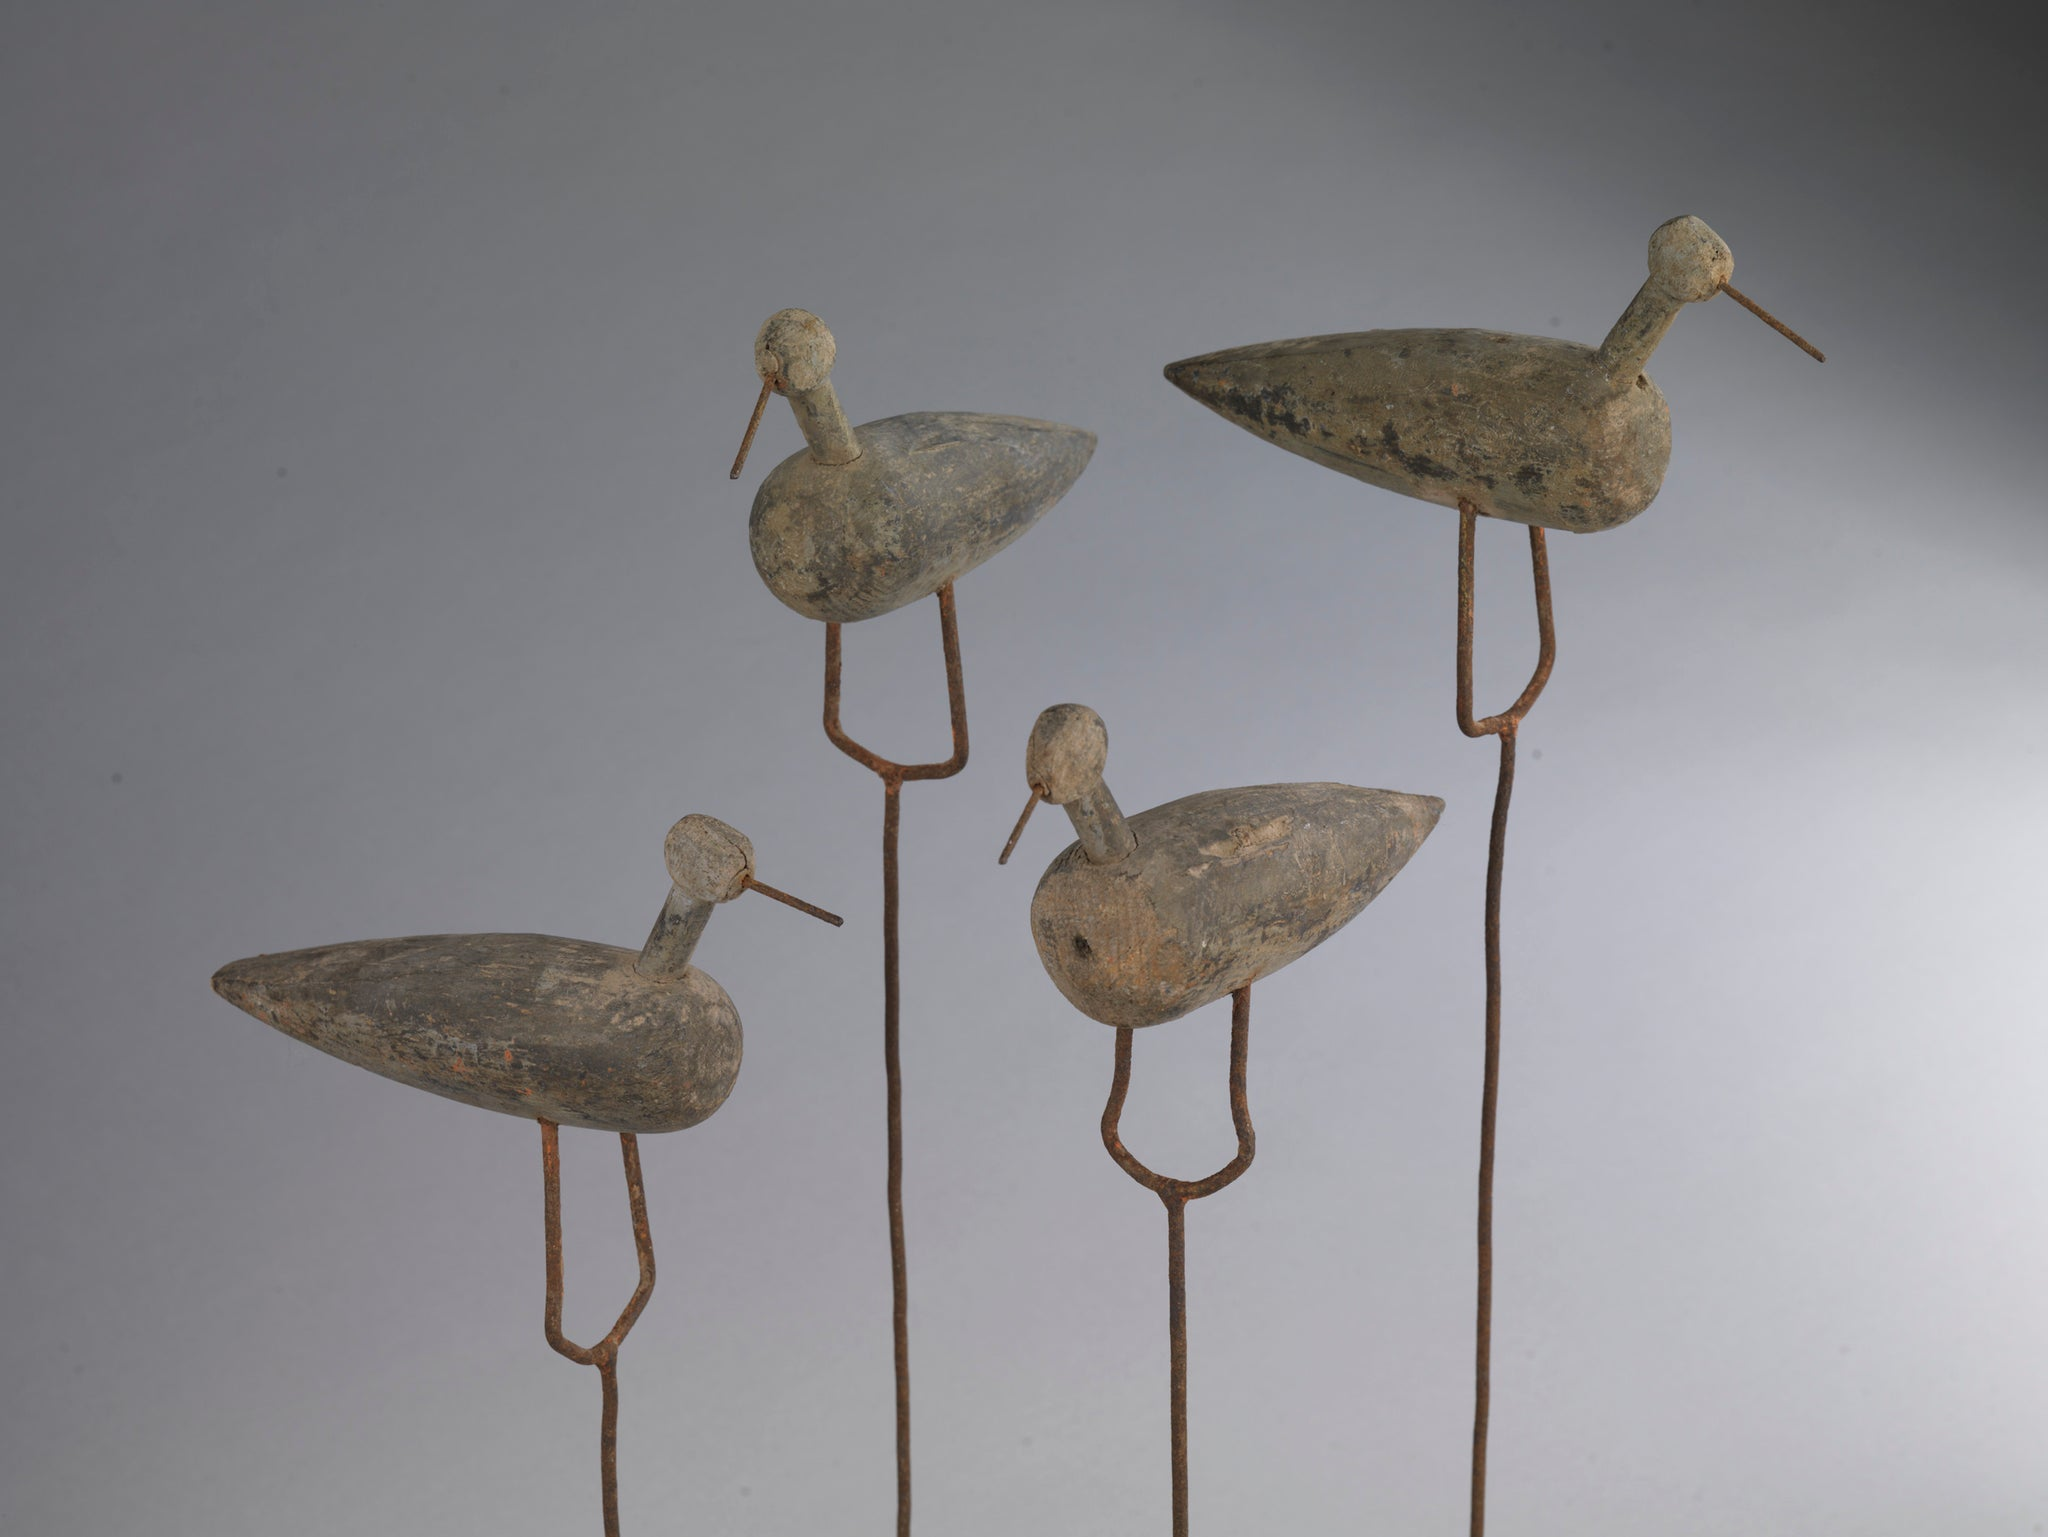 A Group of Four Shorebird Decoys